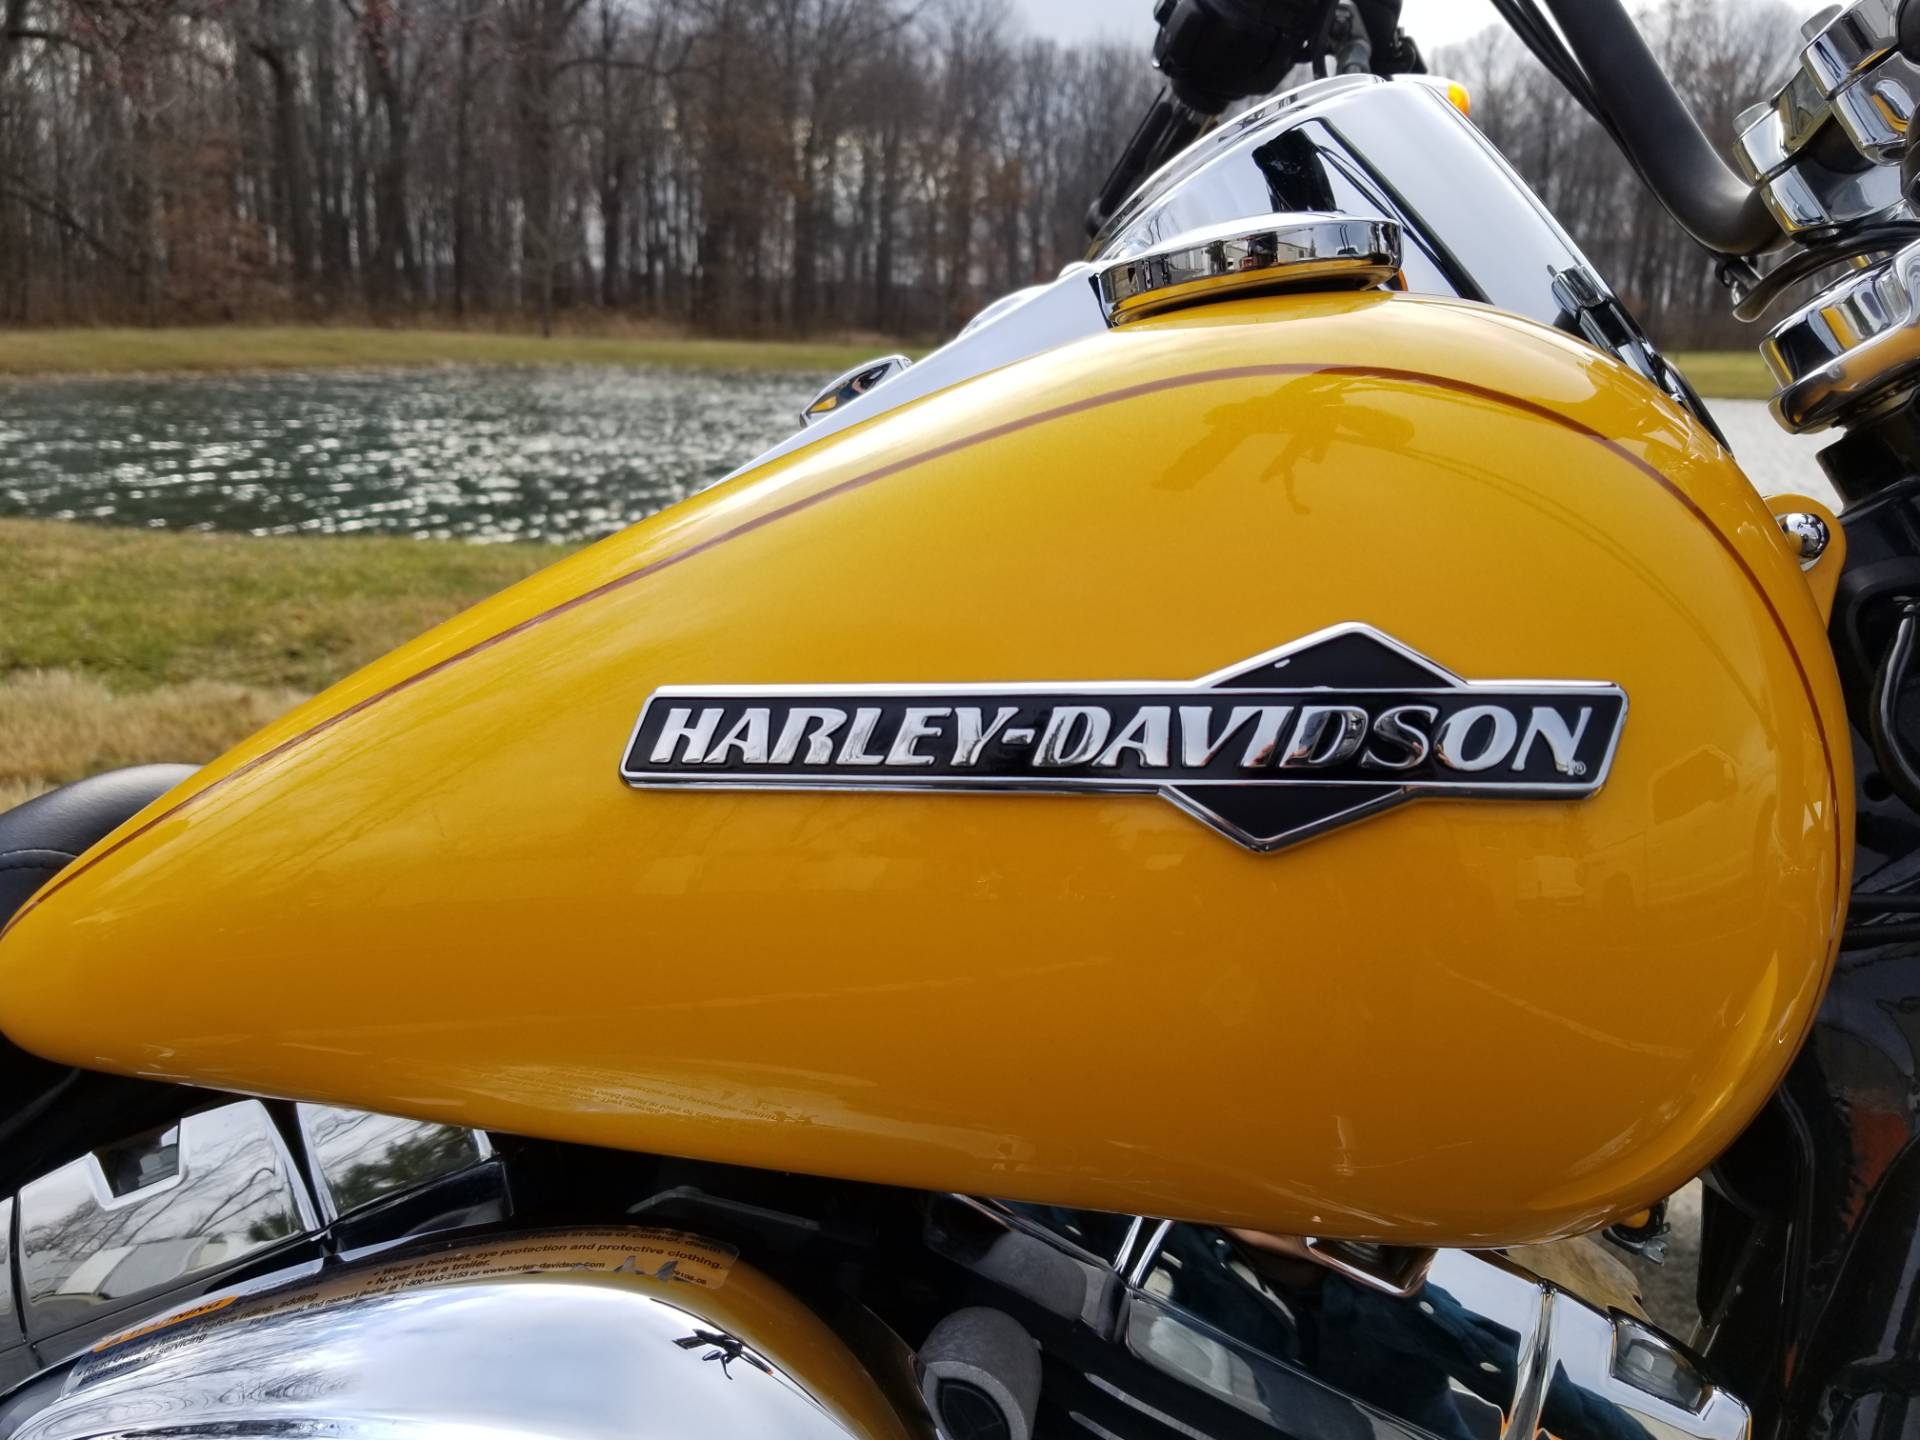 2013 Harley-Davidson Dyna® Super Glide® Custom in Sunbury, Ohio - Photo 2